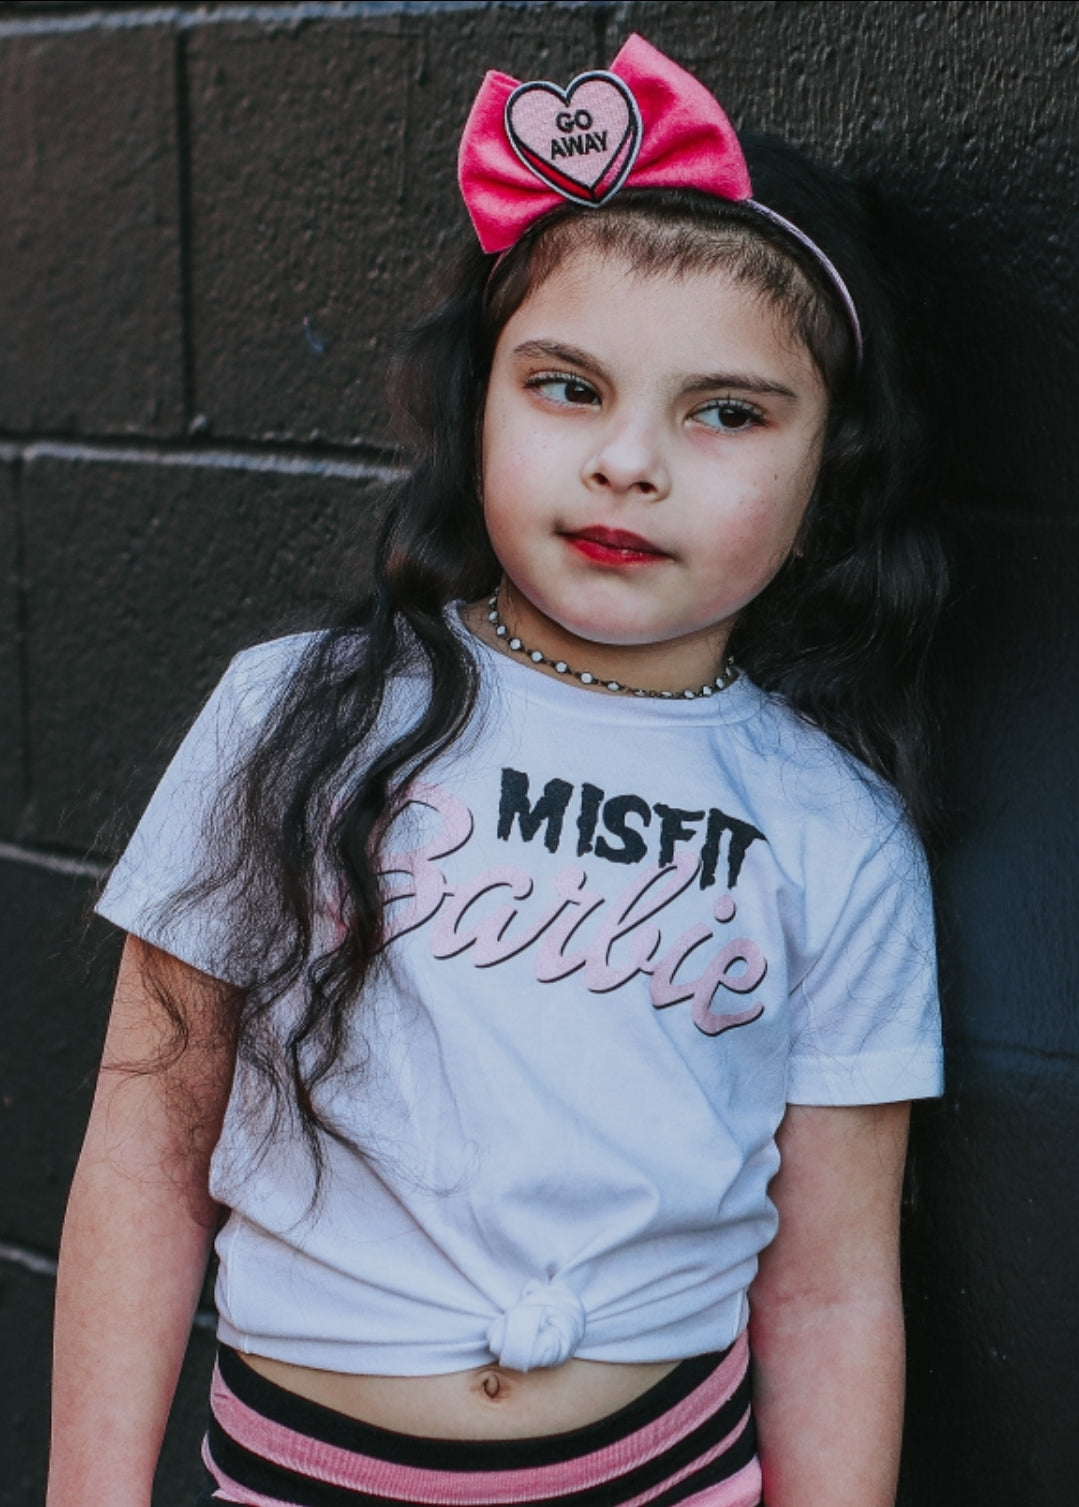 Misfit Barbie Tee Shirt